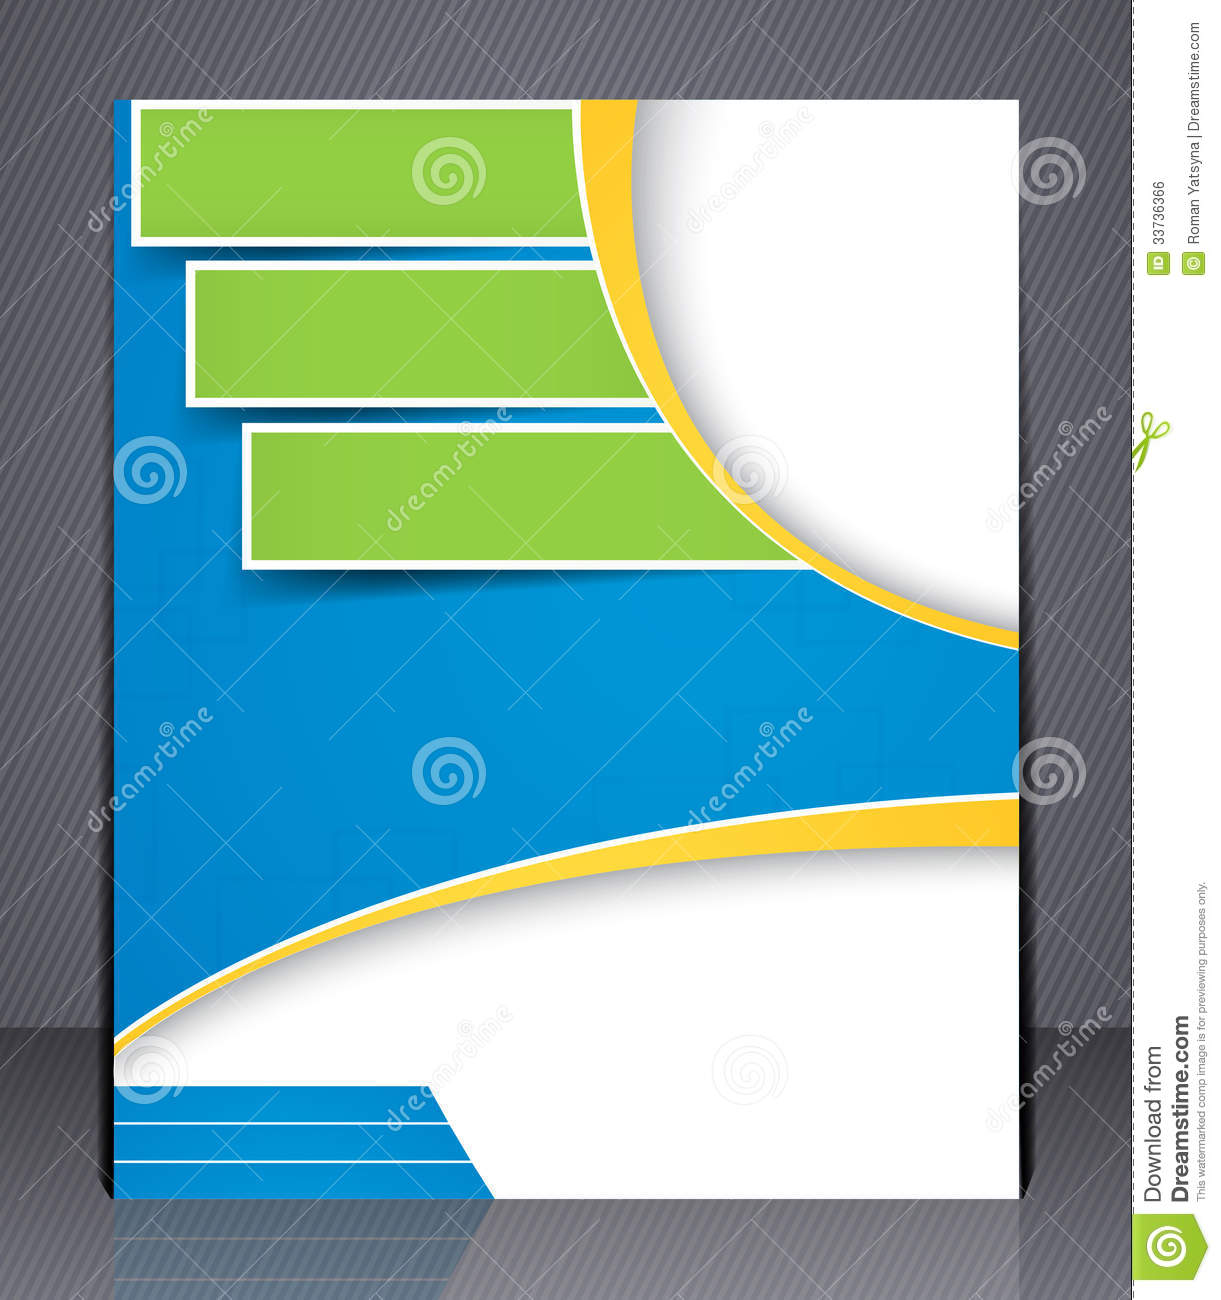 layout business brochure template or magazine co stock vector